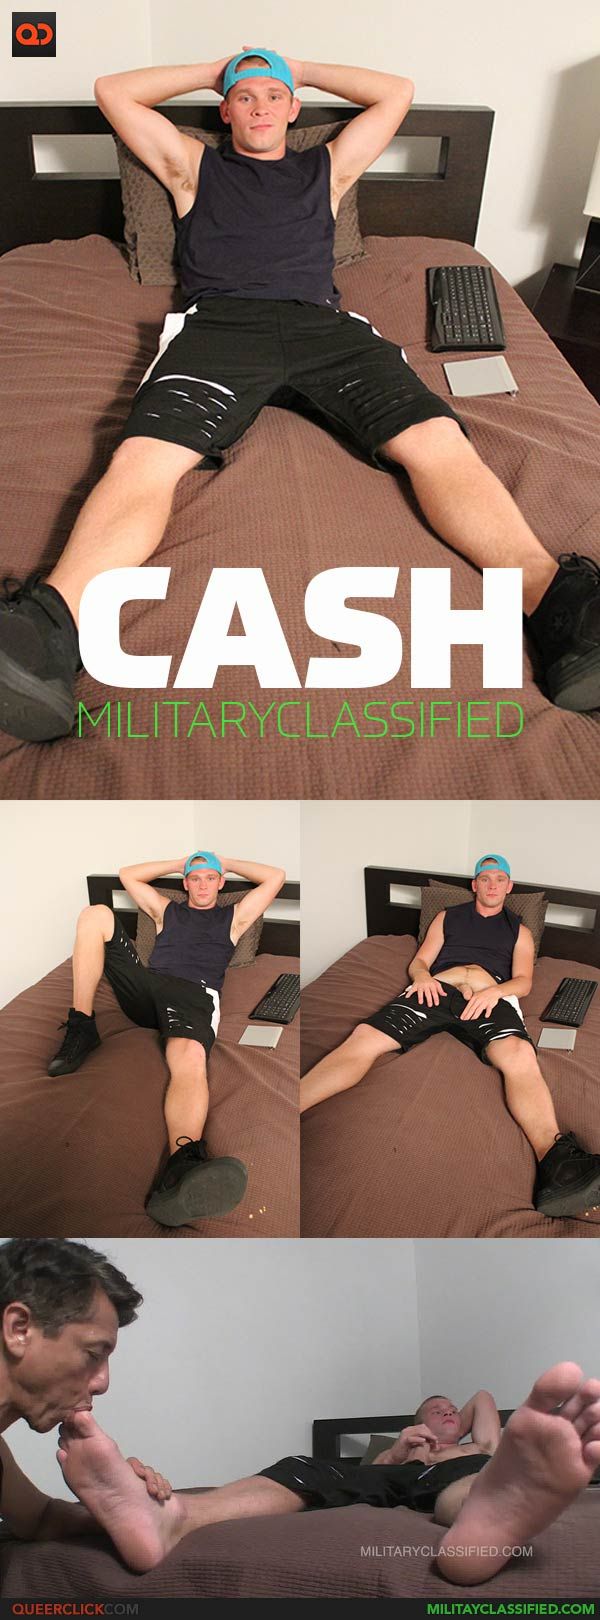 Military Classified: Cash